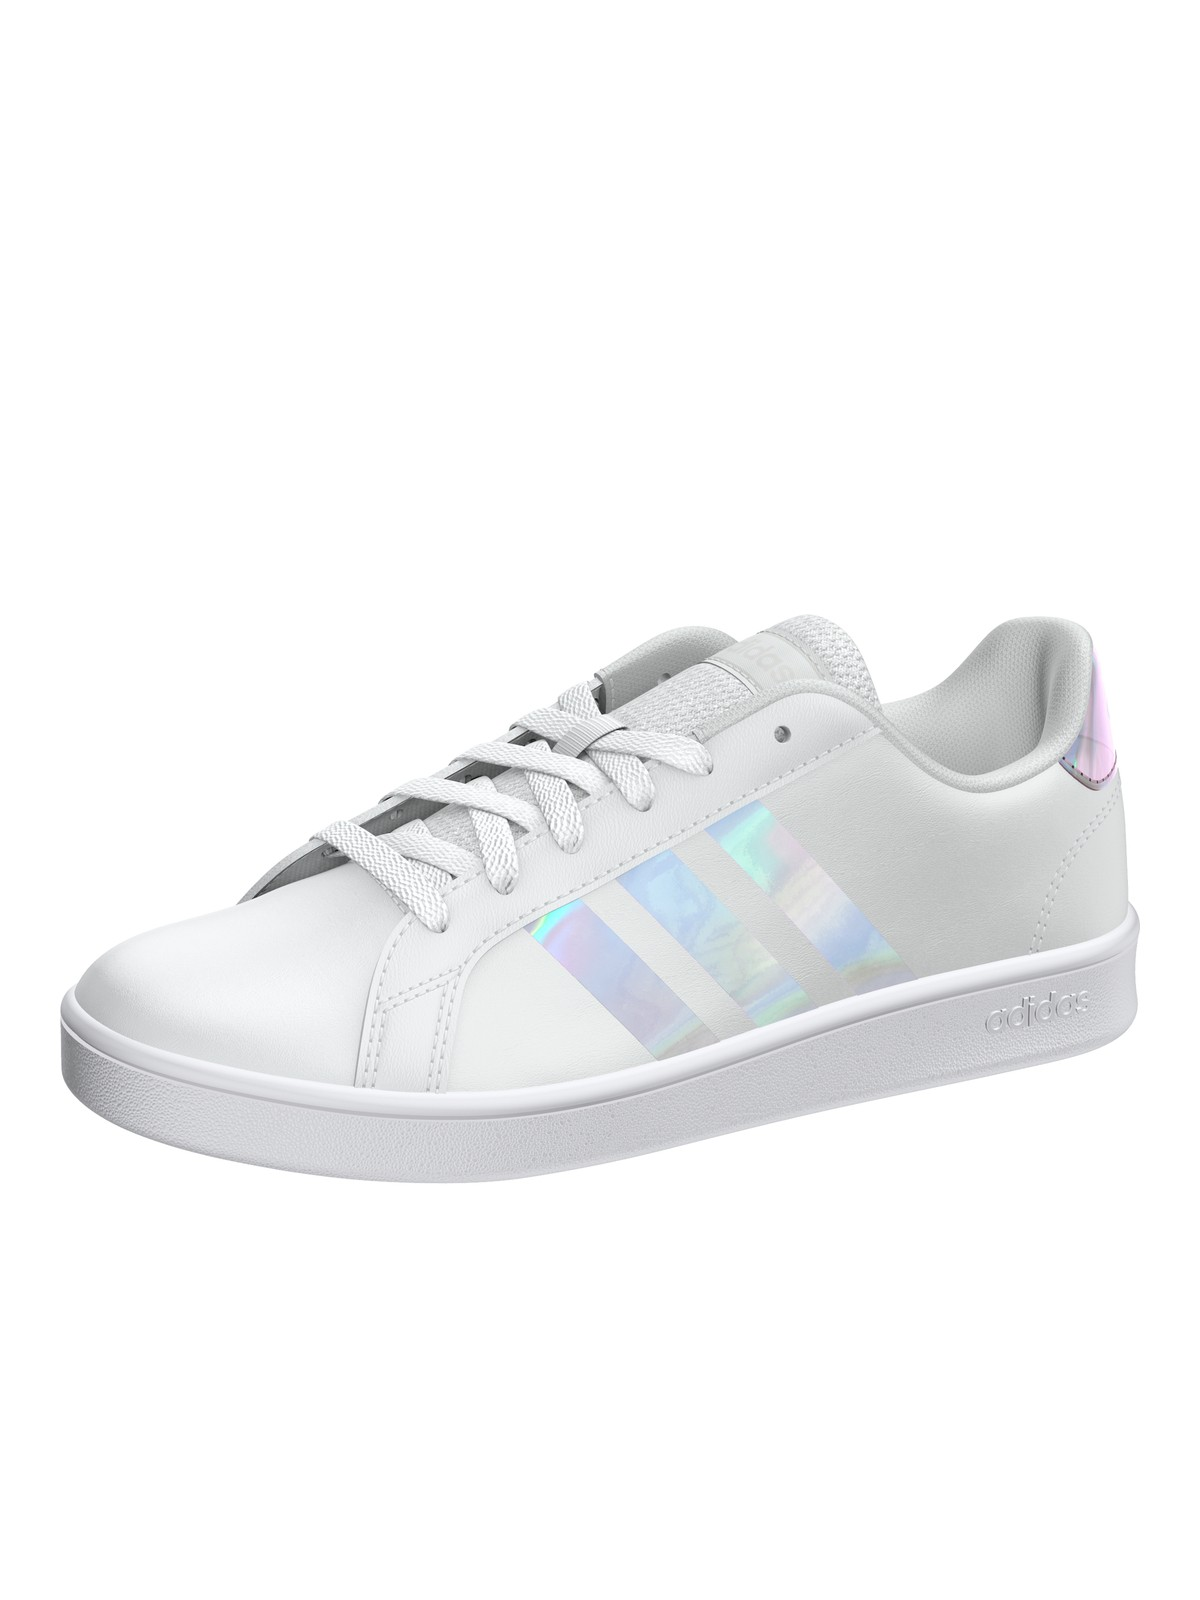 adidas sneakers femme blanche